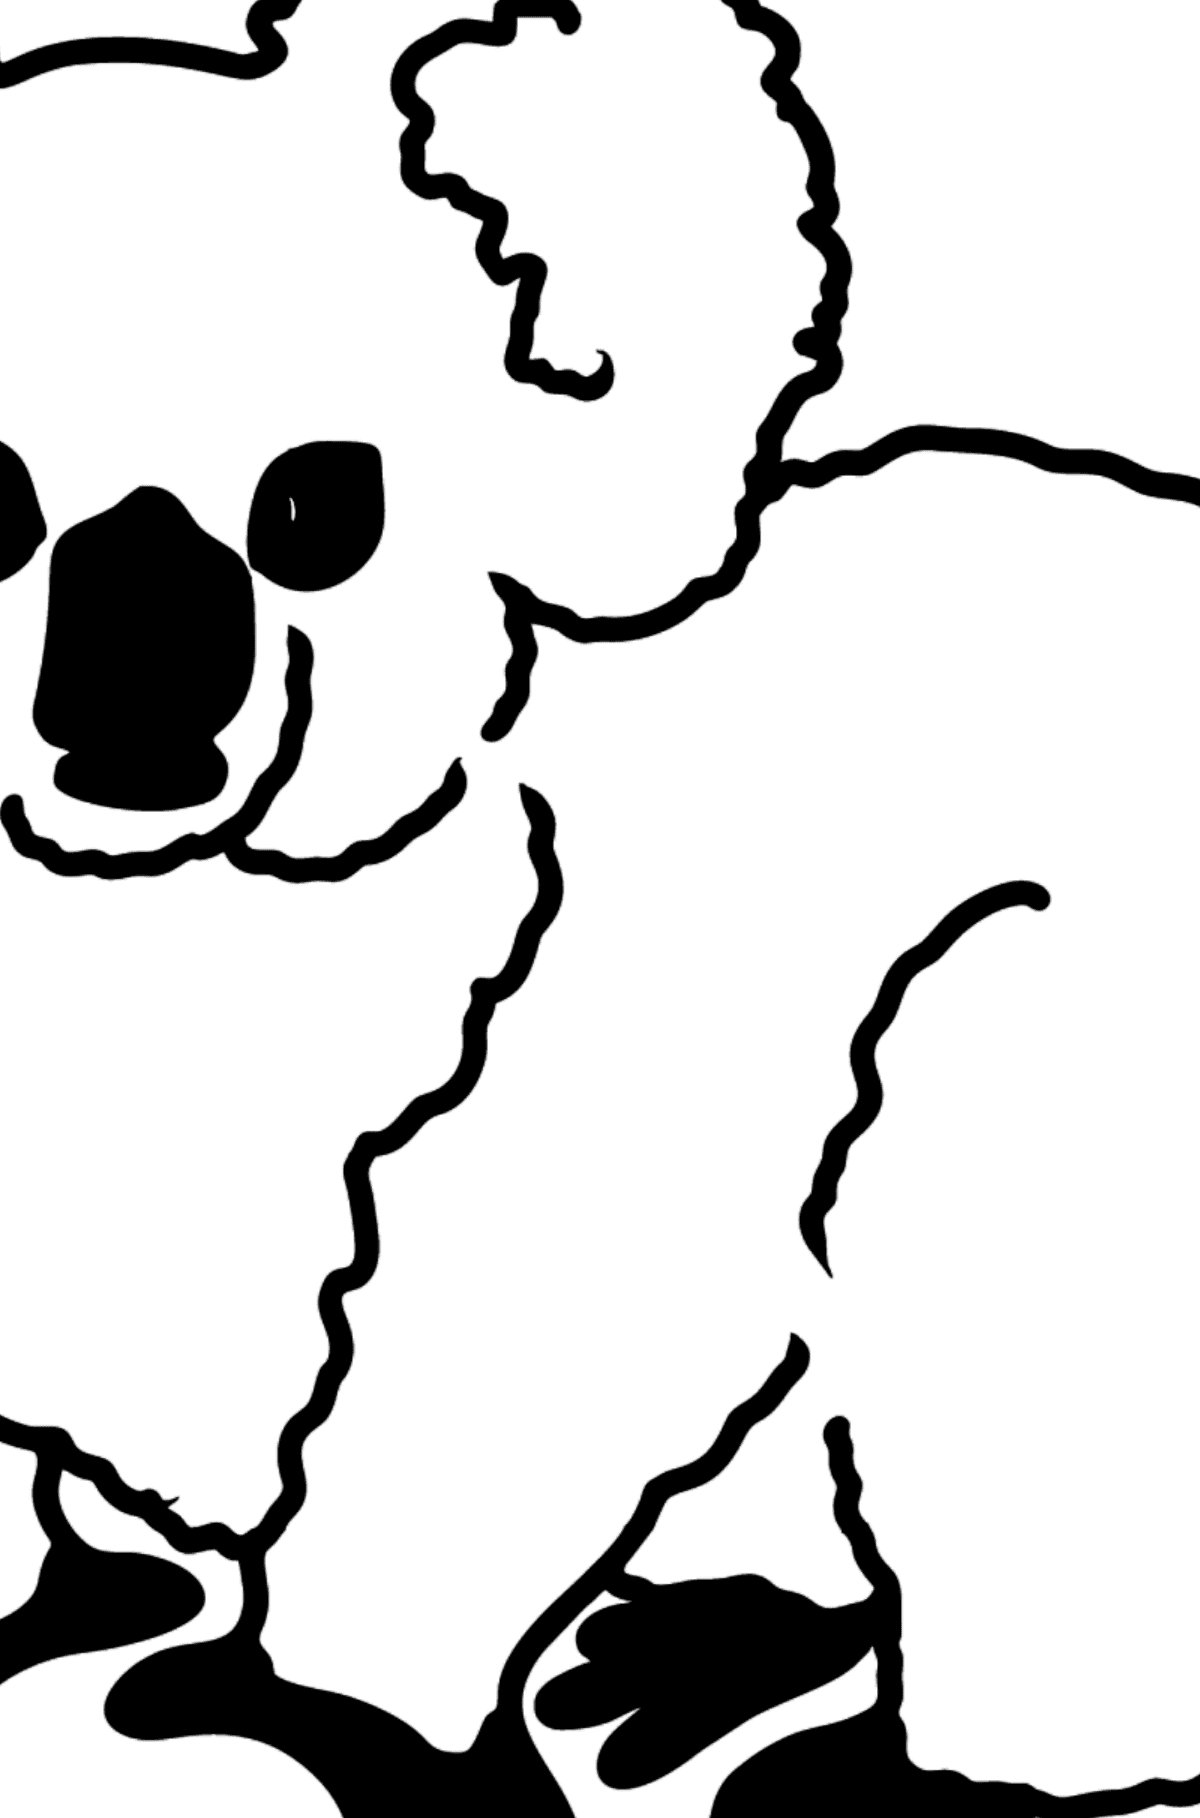 Koala coloring page - Coloring by Numbers for Kids